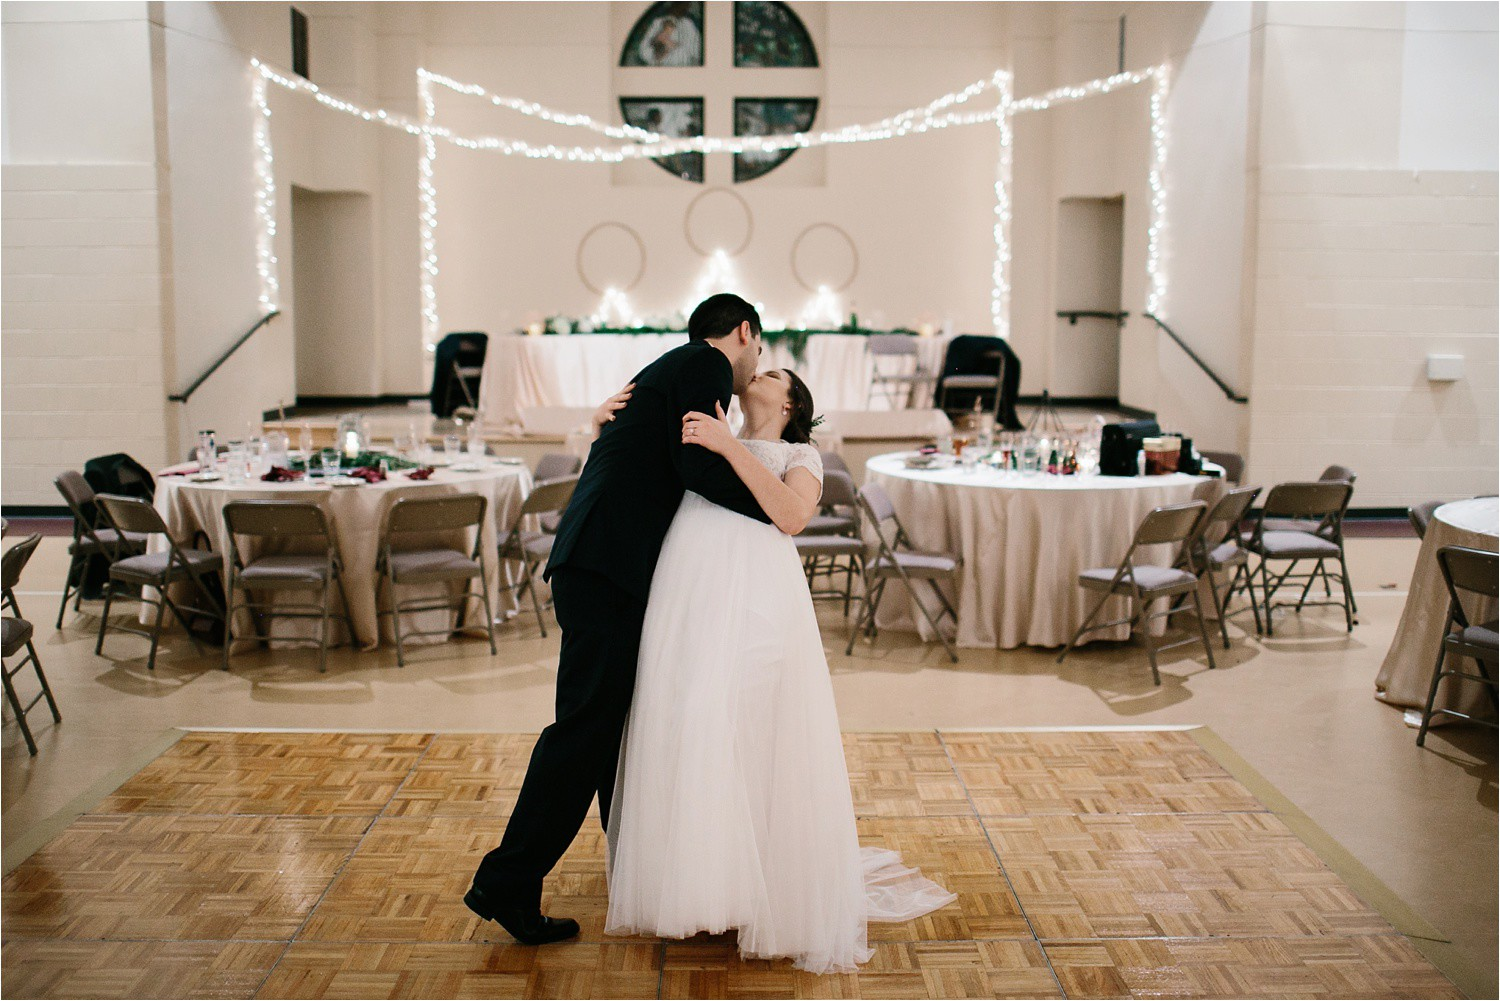 Alaina + Josh __ a wintertime wedding in Houston, TX with Christmas accents and a BHLDN dress by North Texas Wedding Photographer Rachel Meagan Photography _ 94